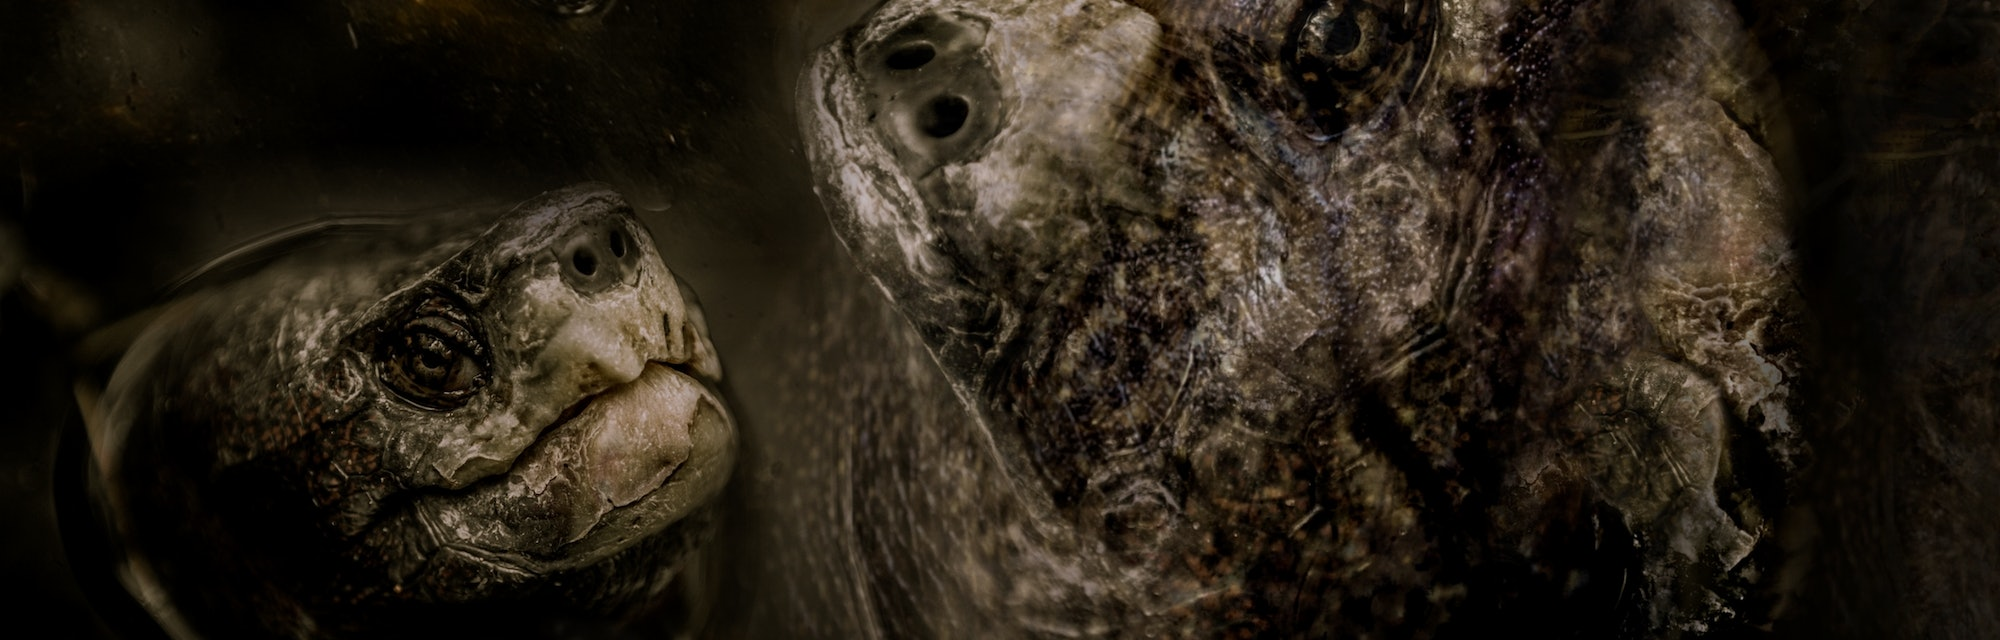 Horrible hallucination with aquatic turtle monster, imaginary creature, scary and creepy nightmare, ...